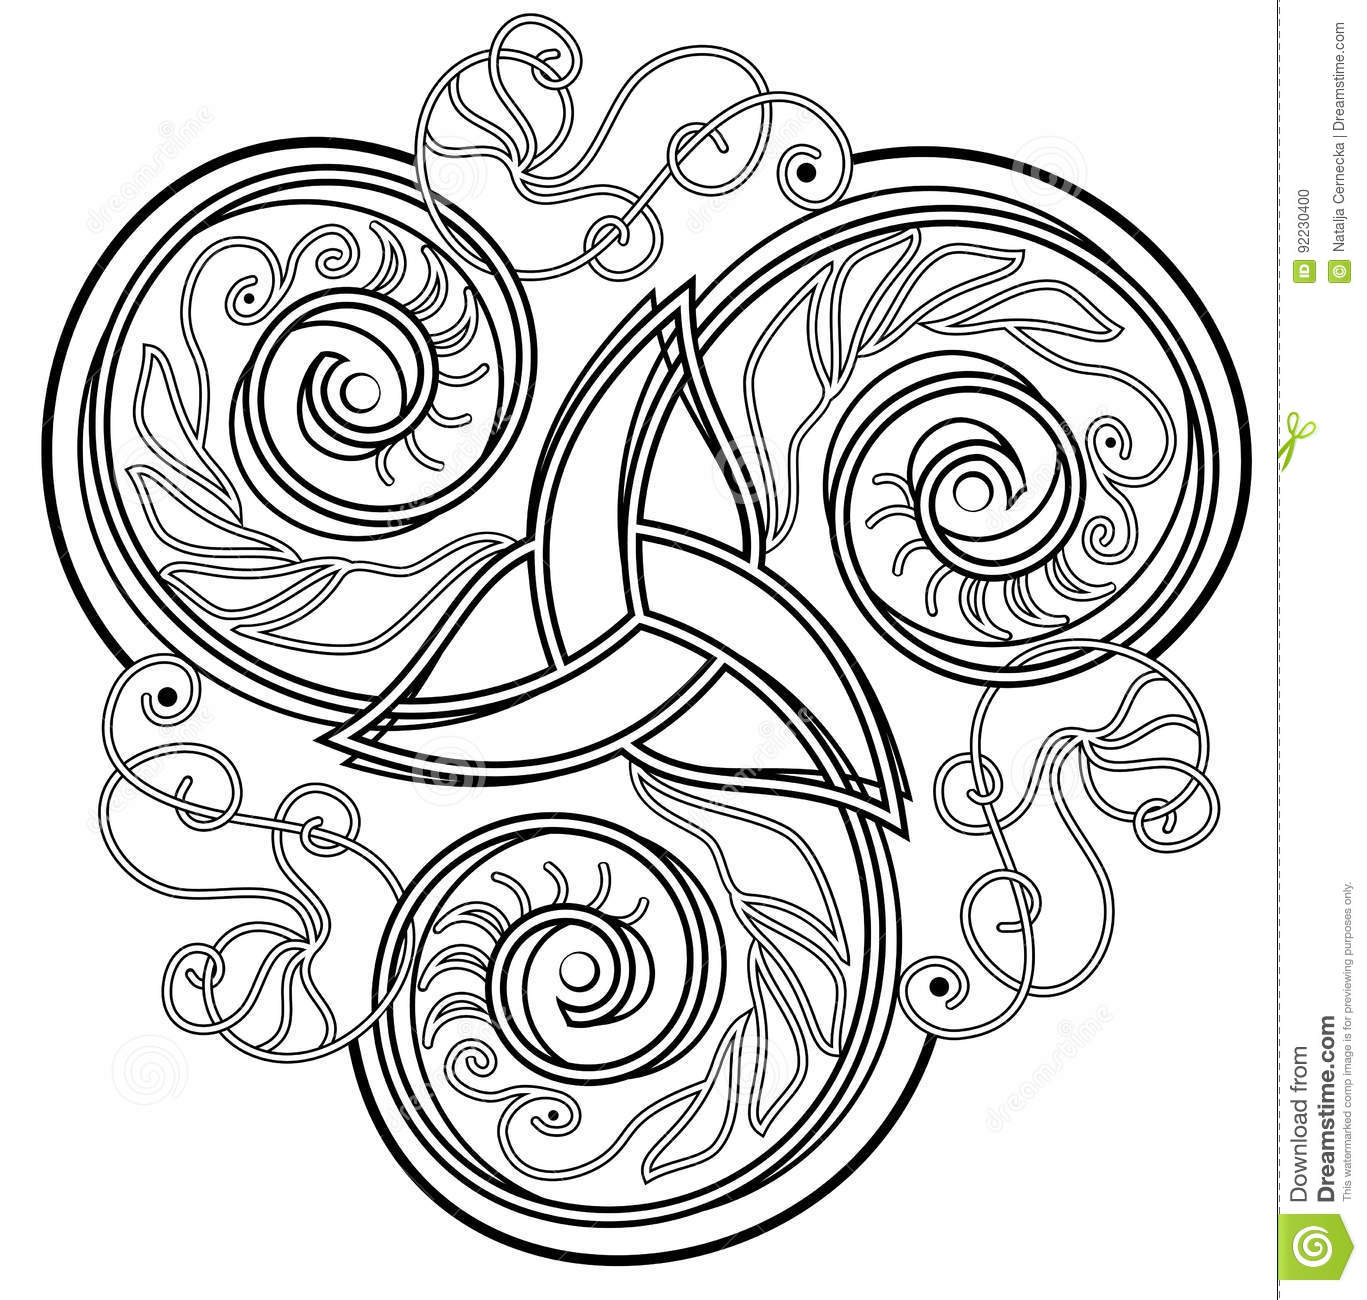 Celtic Disk Ornament With Triple Spiral Symbol Black And White